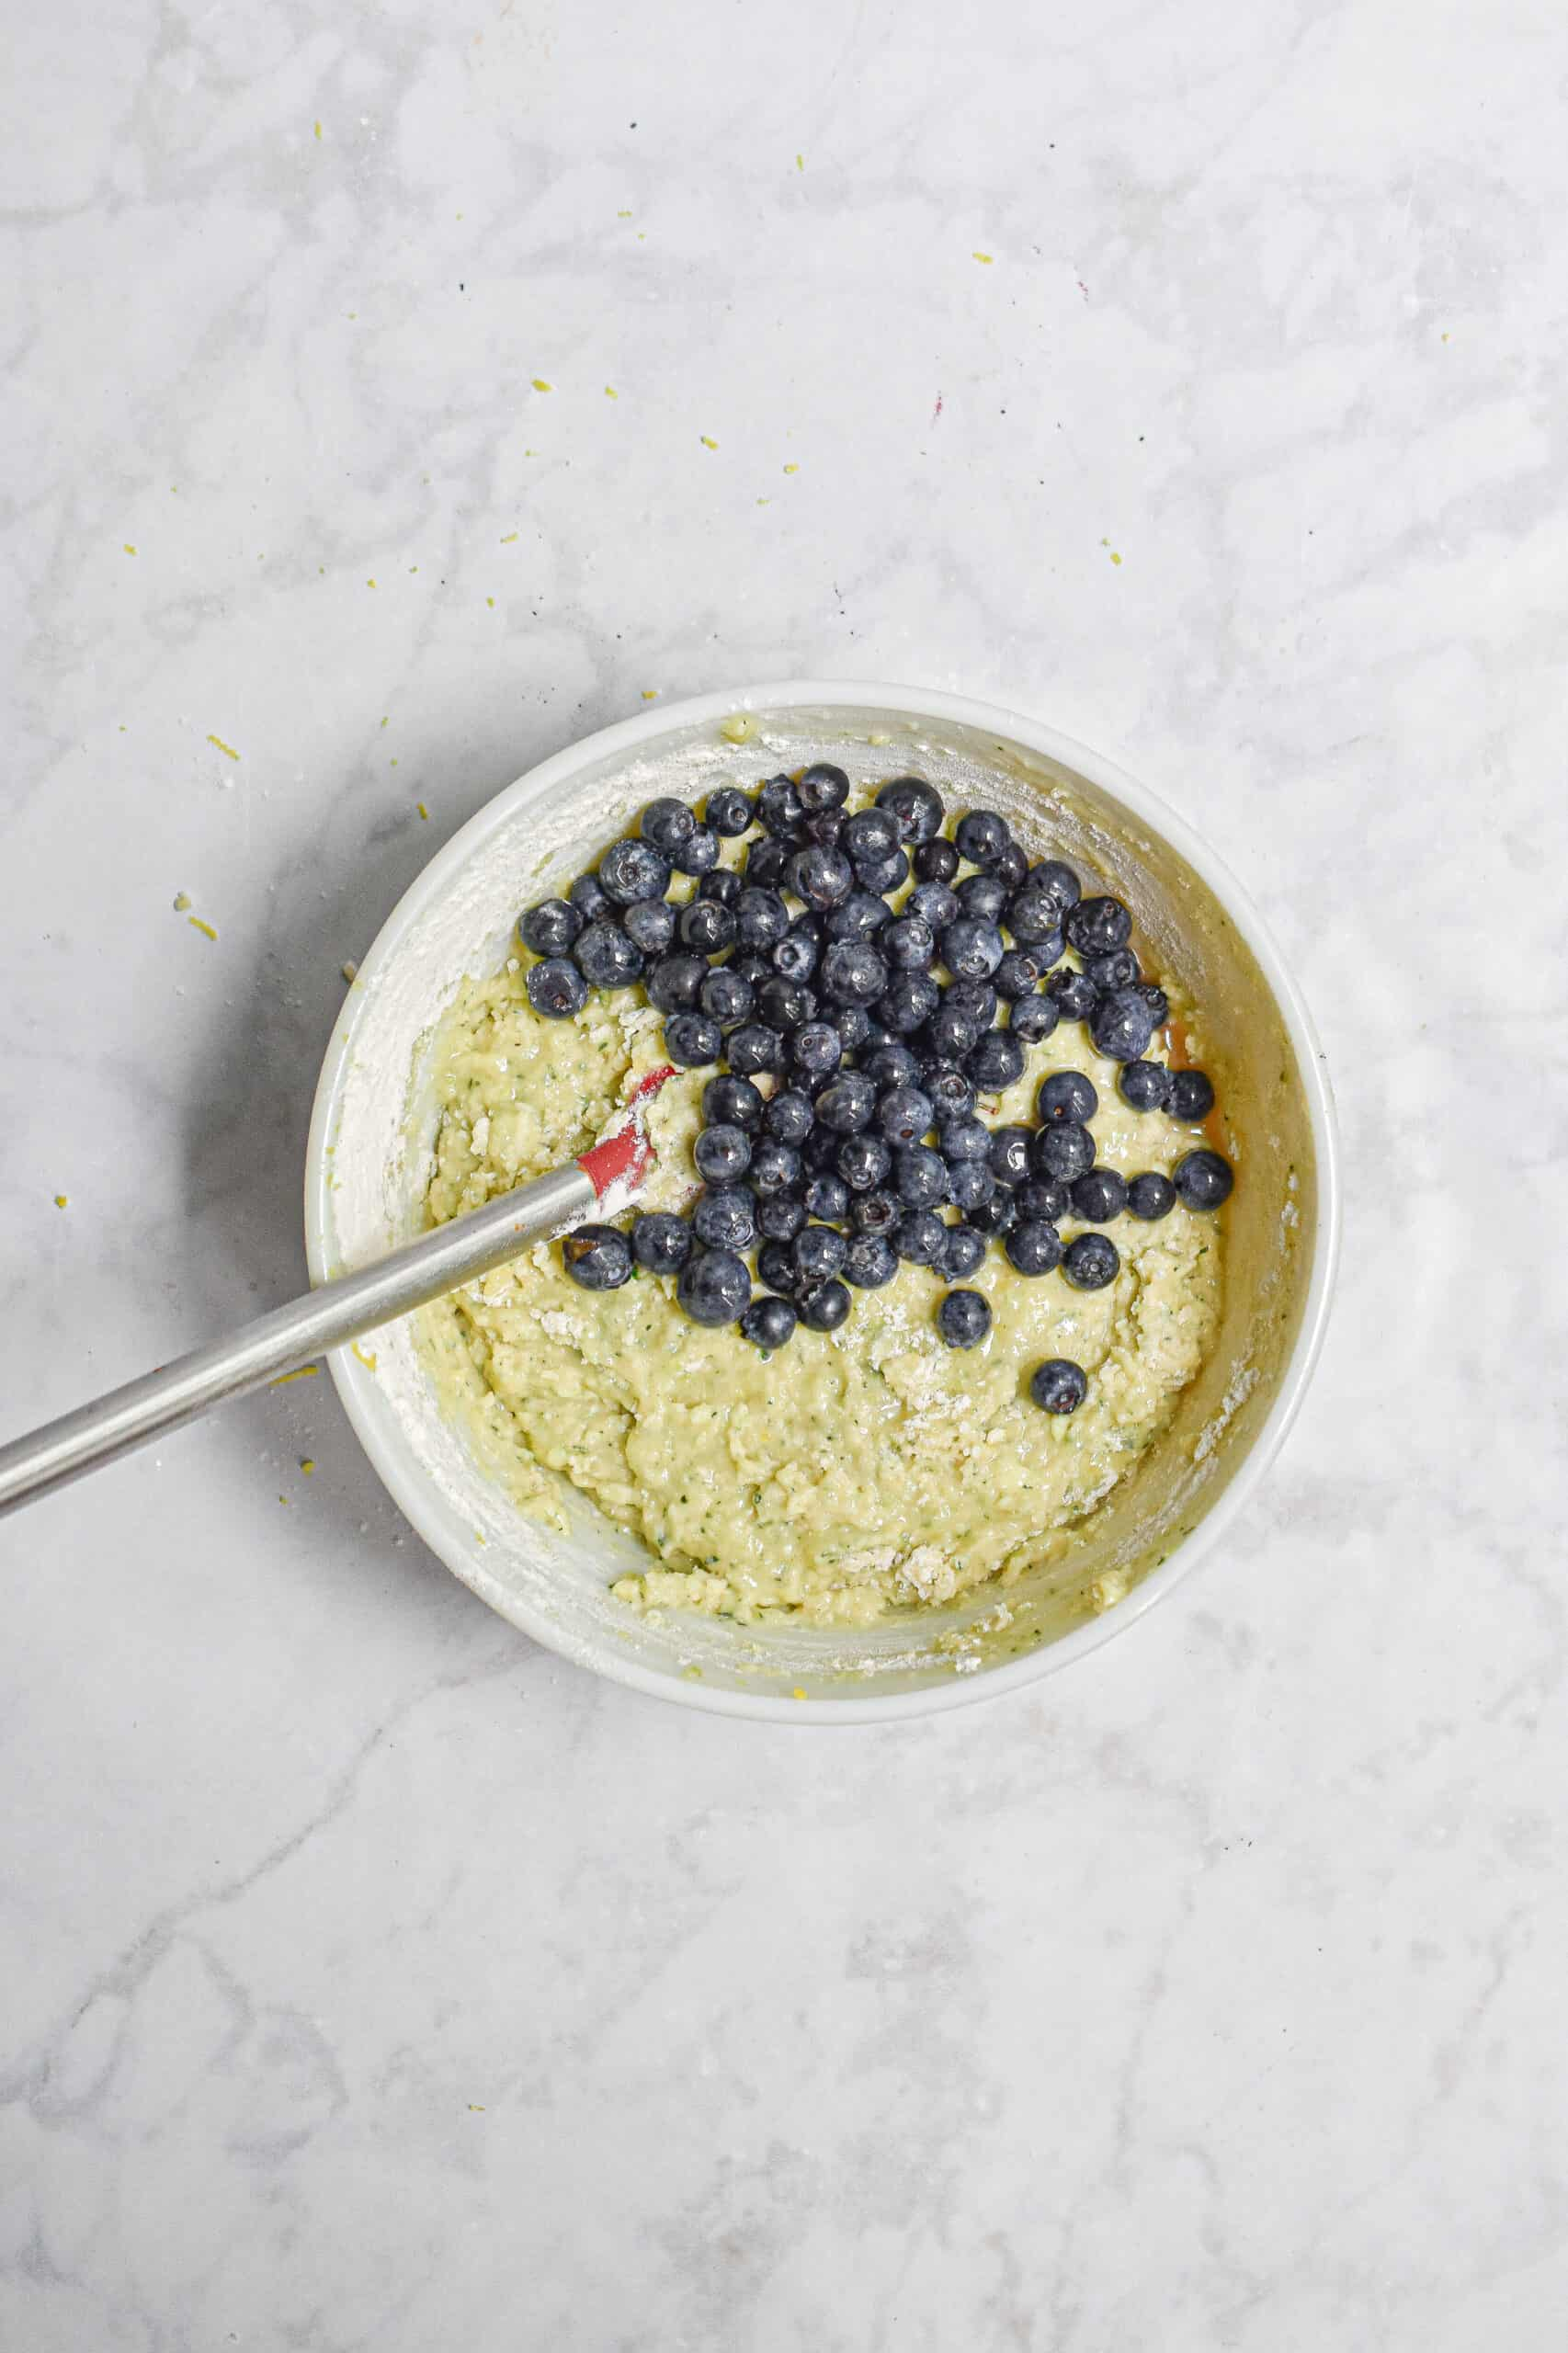 The blueberries are added to the batter for the Lemon and blueberry zucchini bread with lemon icing